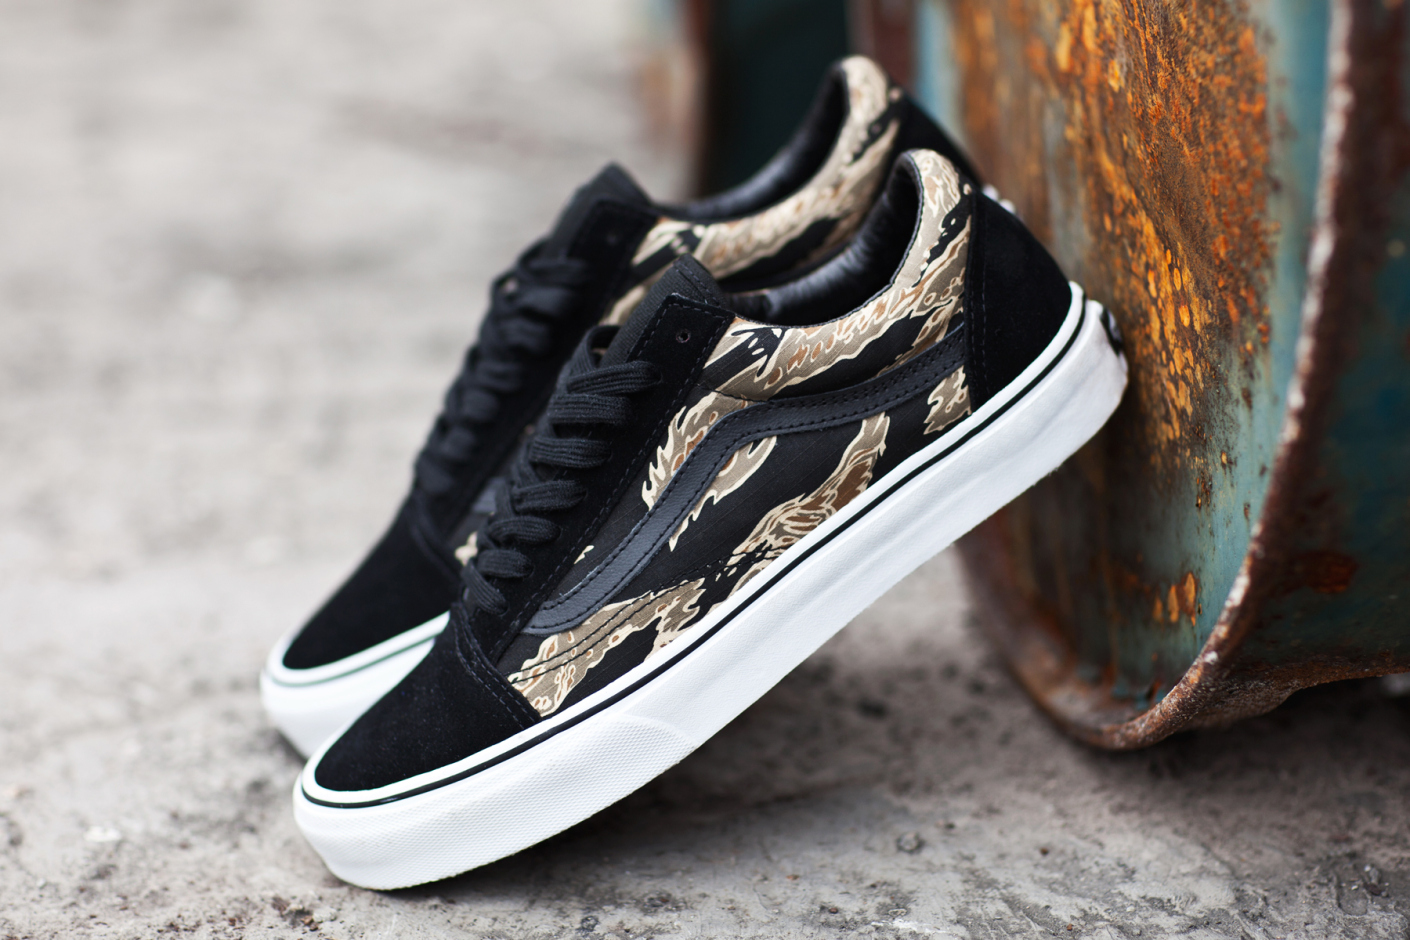 Vans Old Skool salon